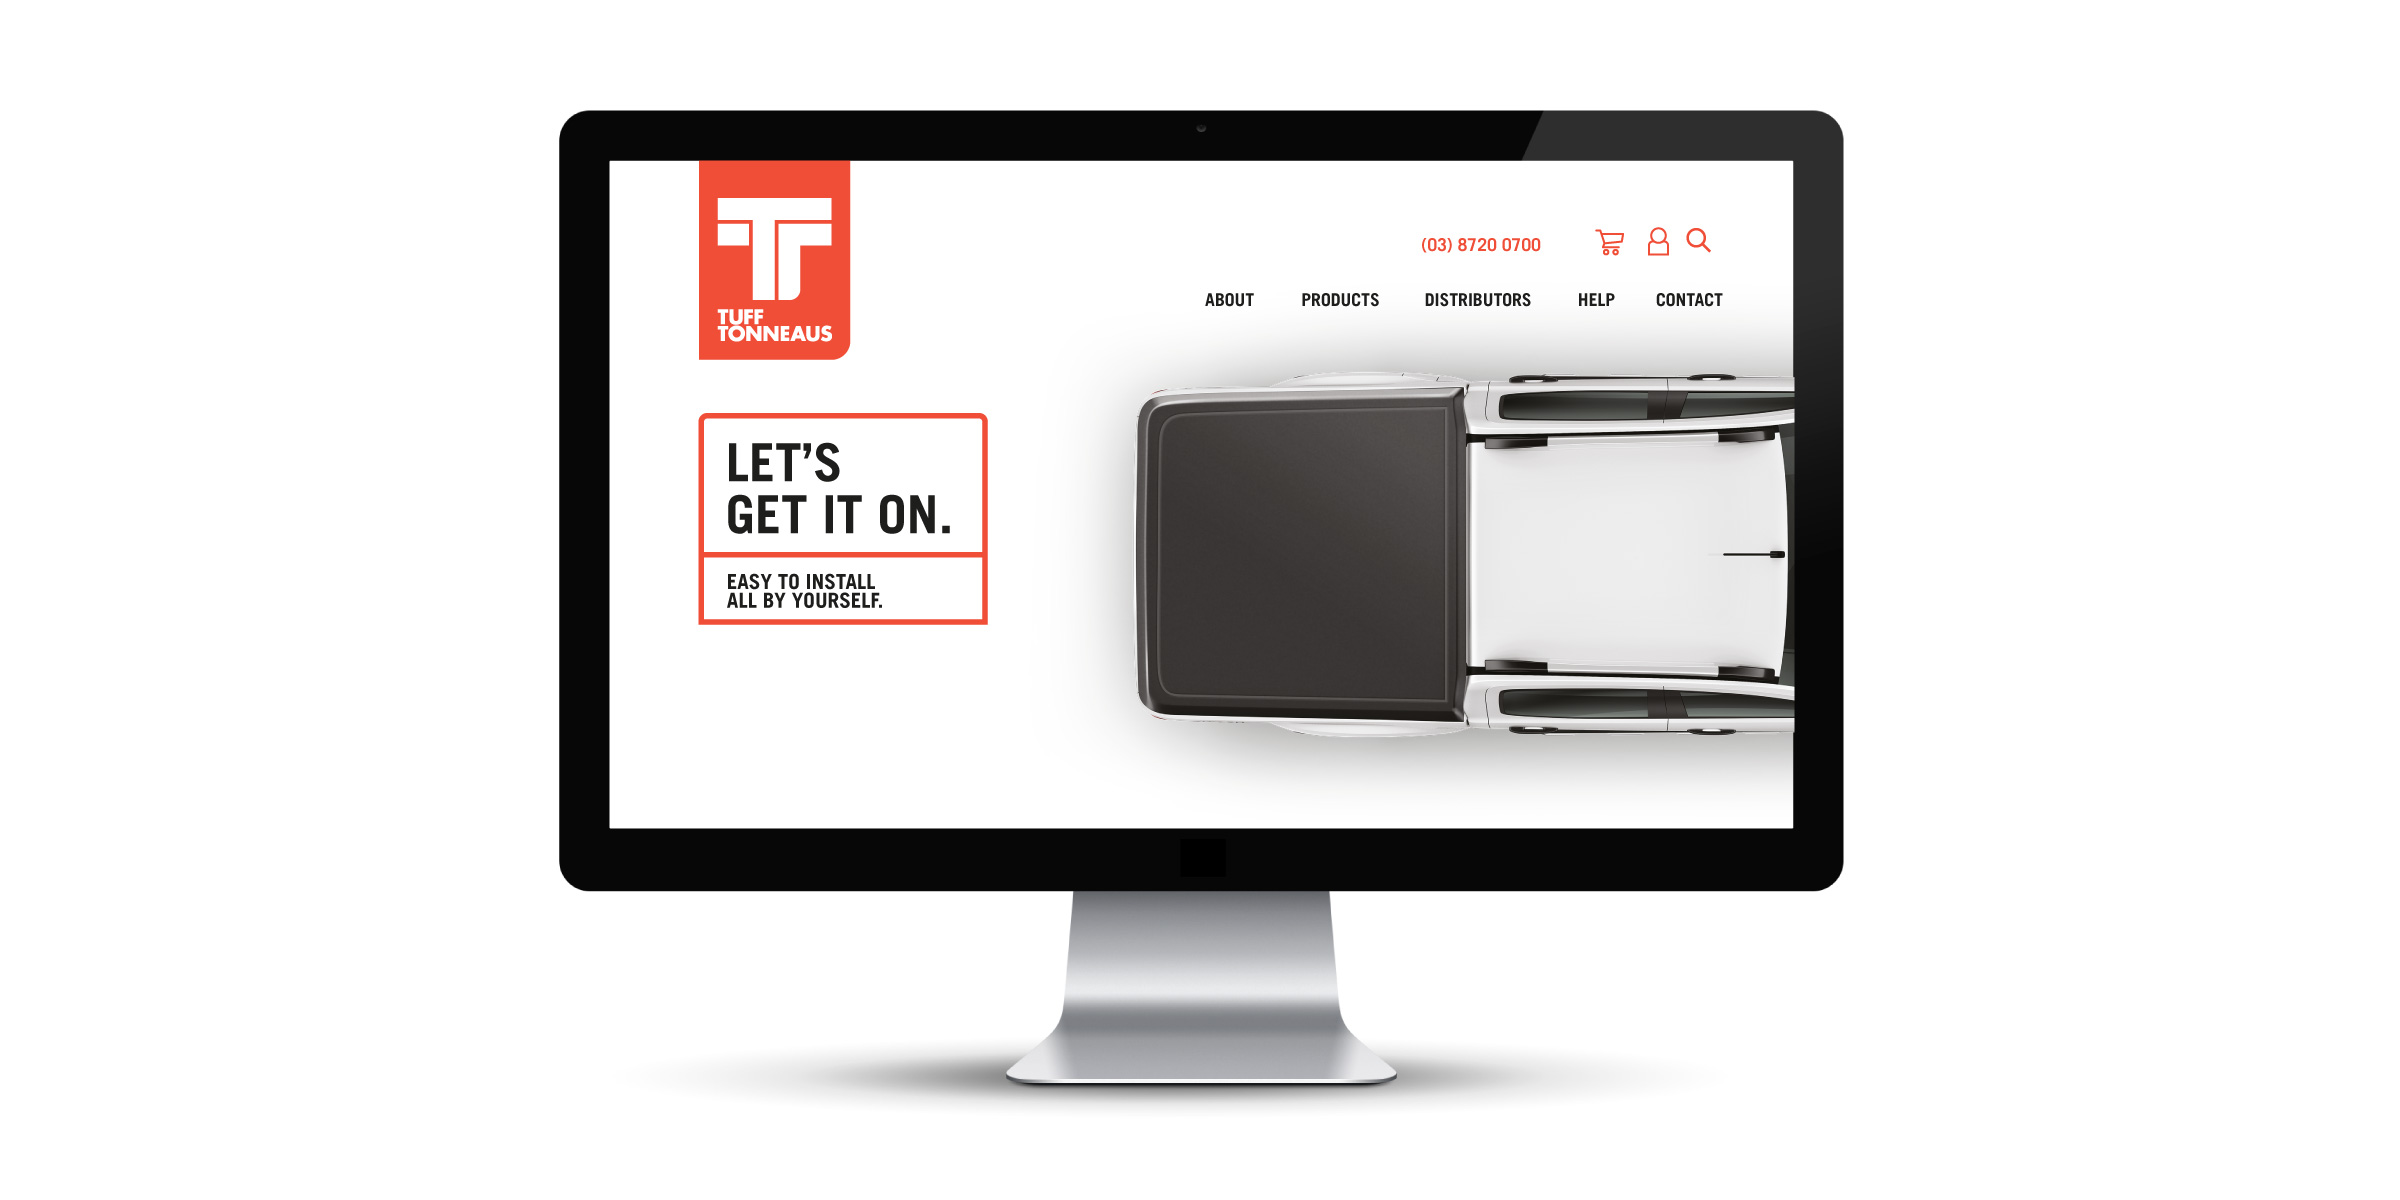 Tuff Tonneaus Website Design